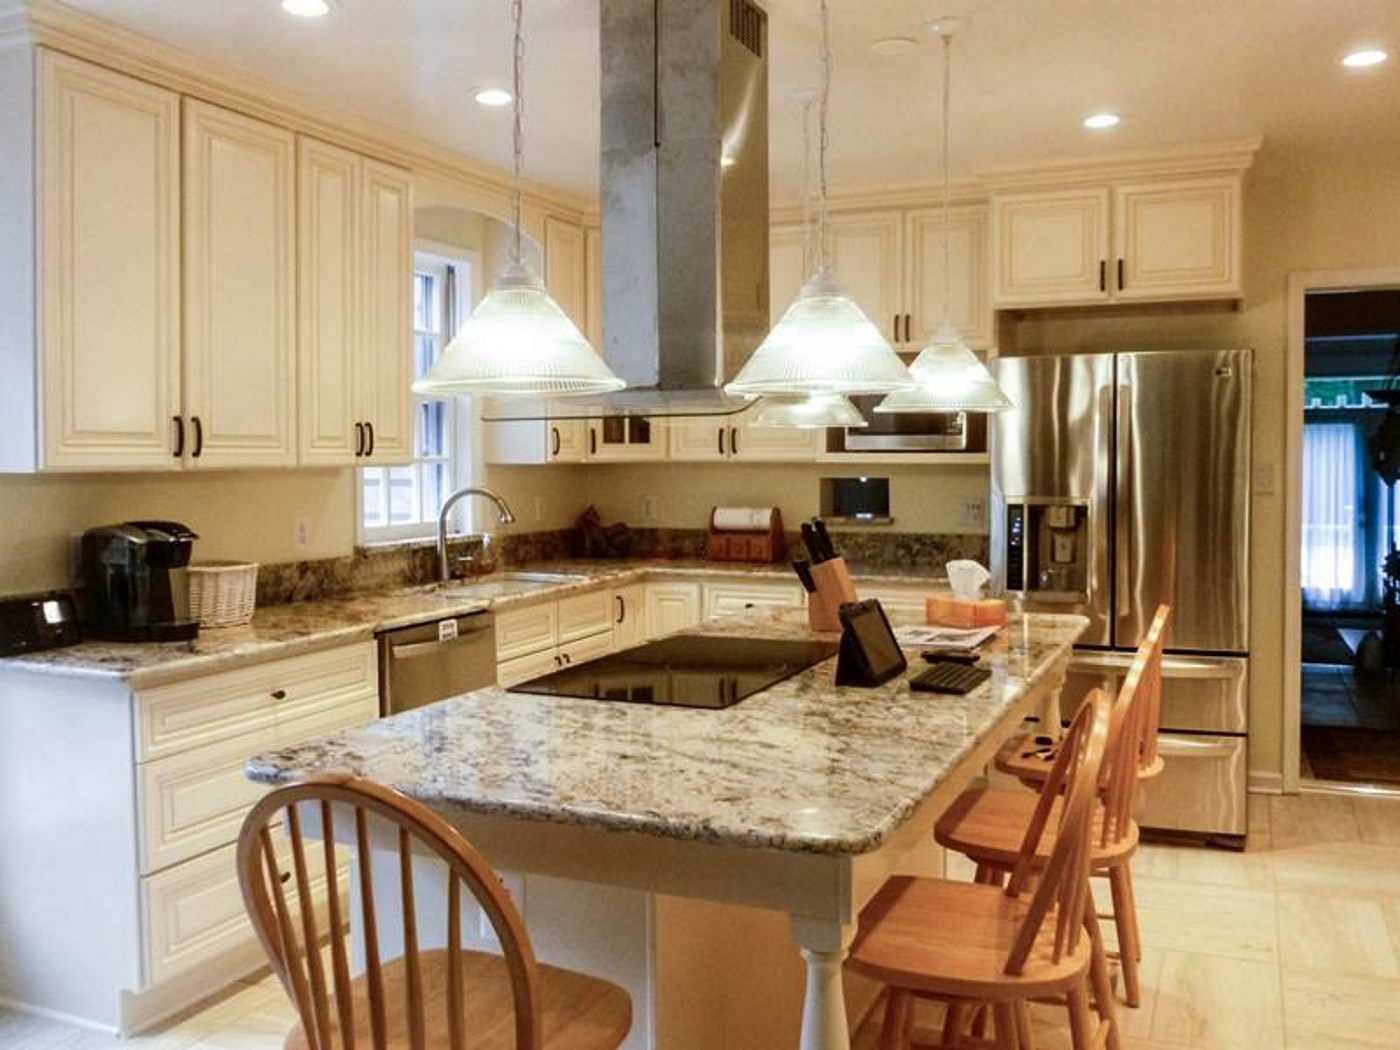 Expert Home Remodeling Contractor in Fairfax, Virginia, Elite Contractors, Announces New Blog Post for Uncommon Room Additions